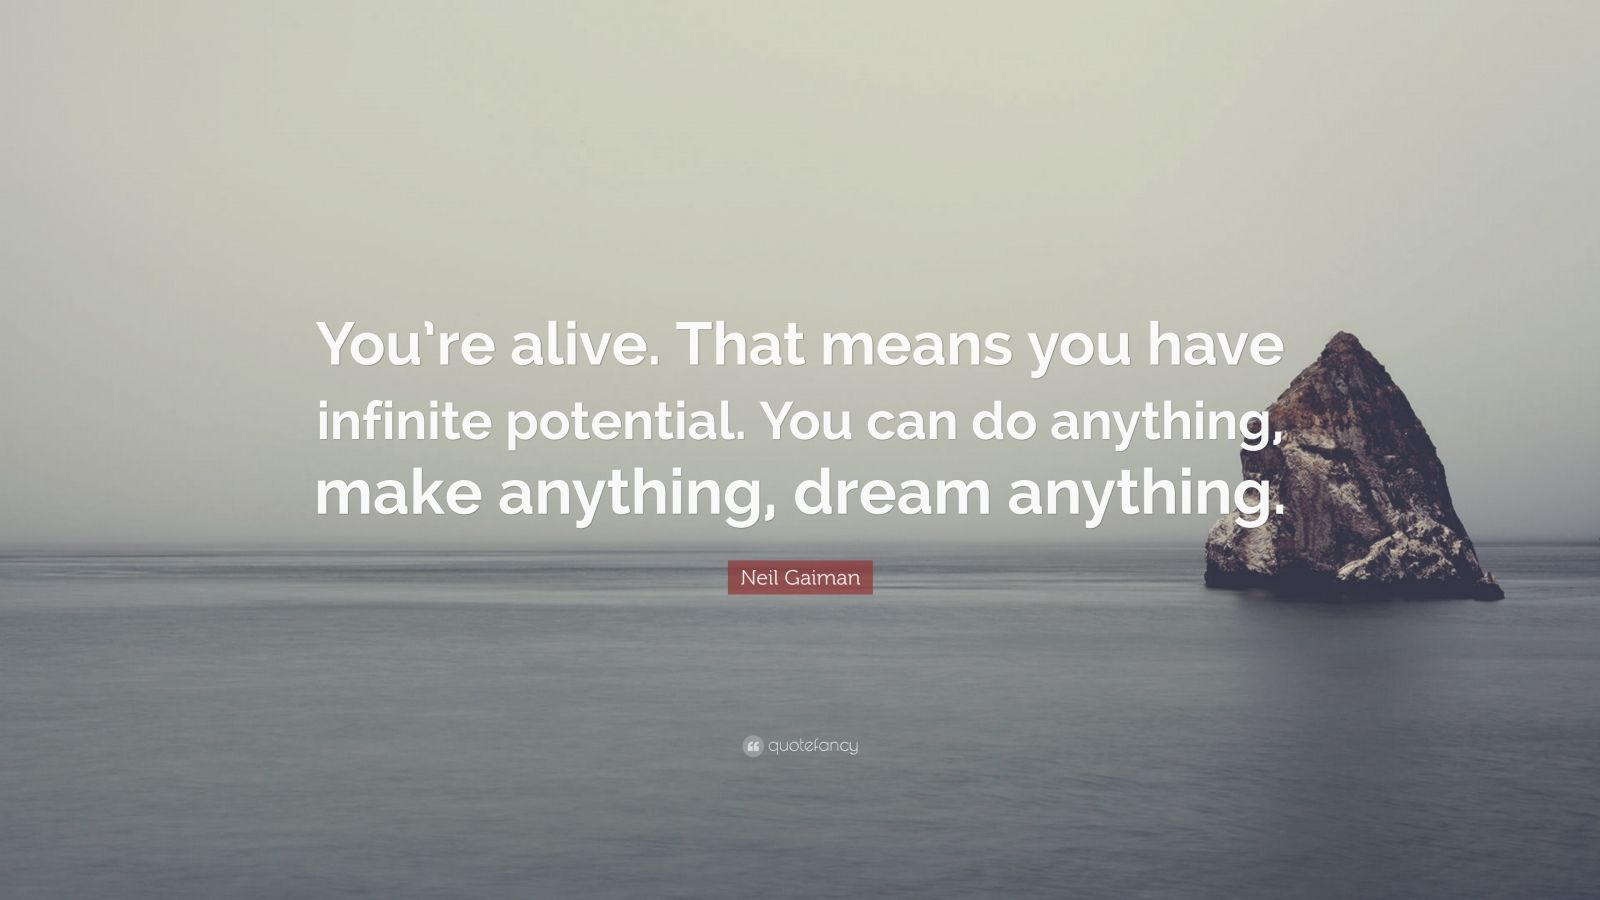 Beautiful Life Wallpapers With Quotes Neil Gaiman Quote You Re Alive That Means You Have